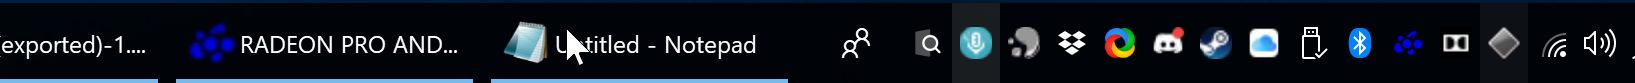 Taskbar is a terrible design.